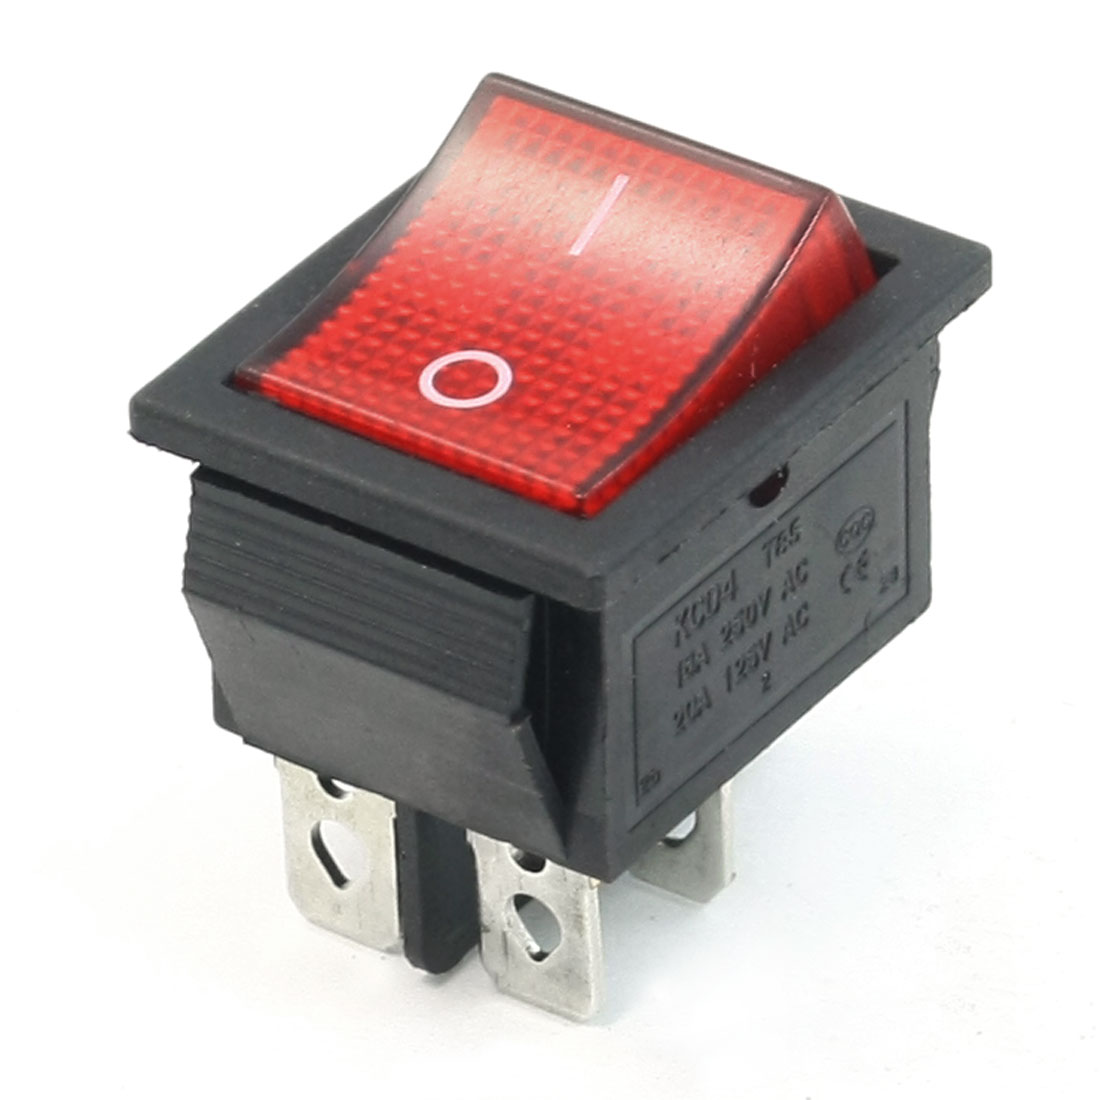 AC 250V/16A 125V/20A Dual Pole Single Throw I/O Rocker Switch Red